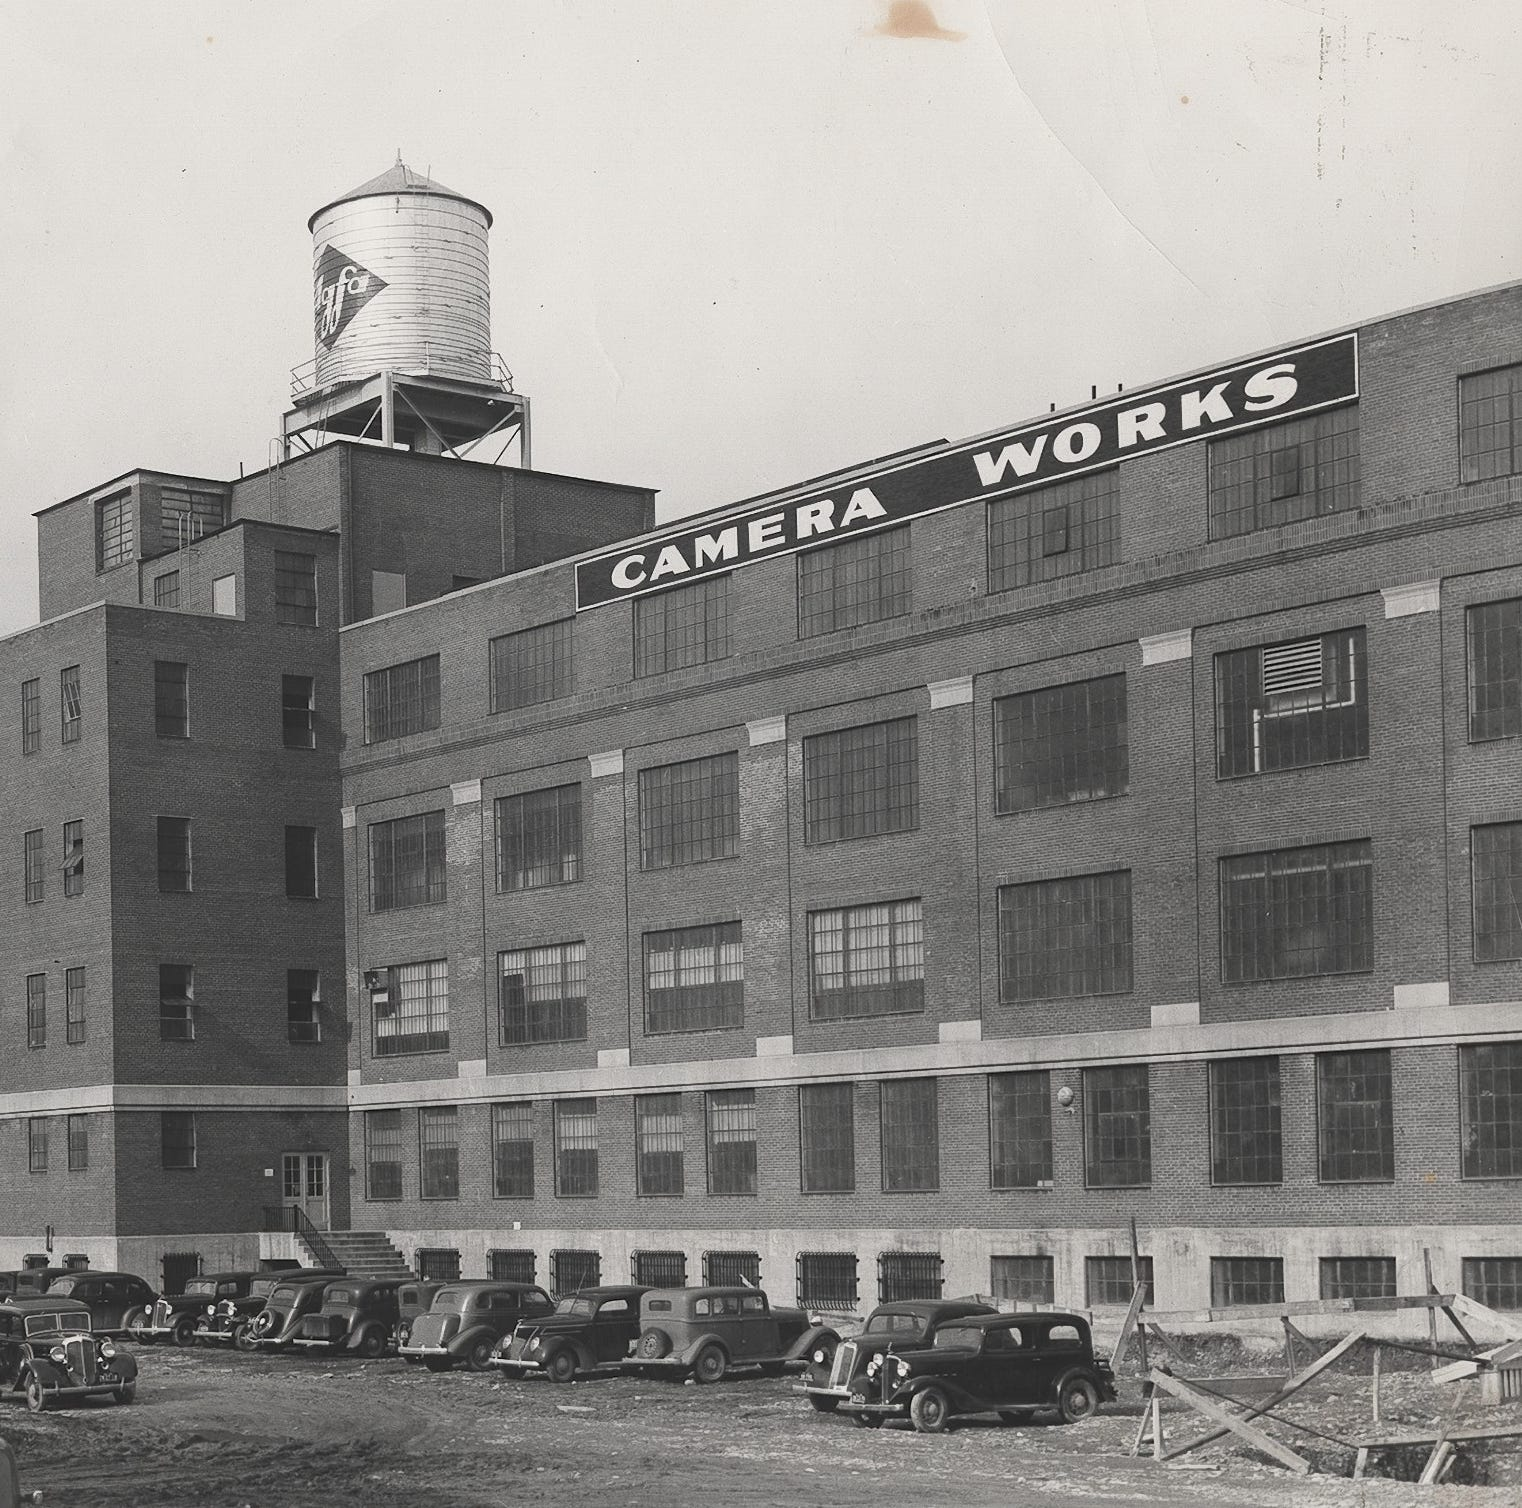 Spanning Time: World War II brought big changes to German-owned company in Binghamton